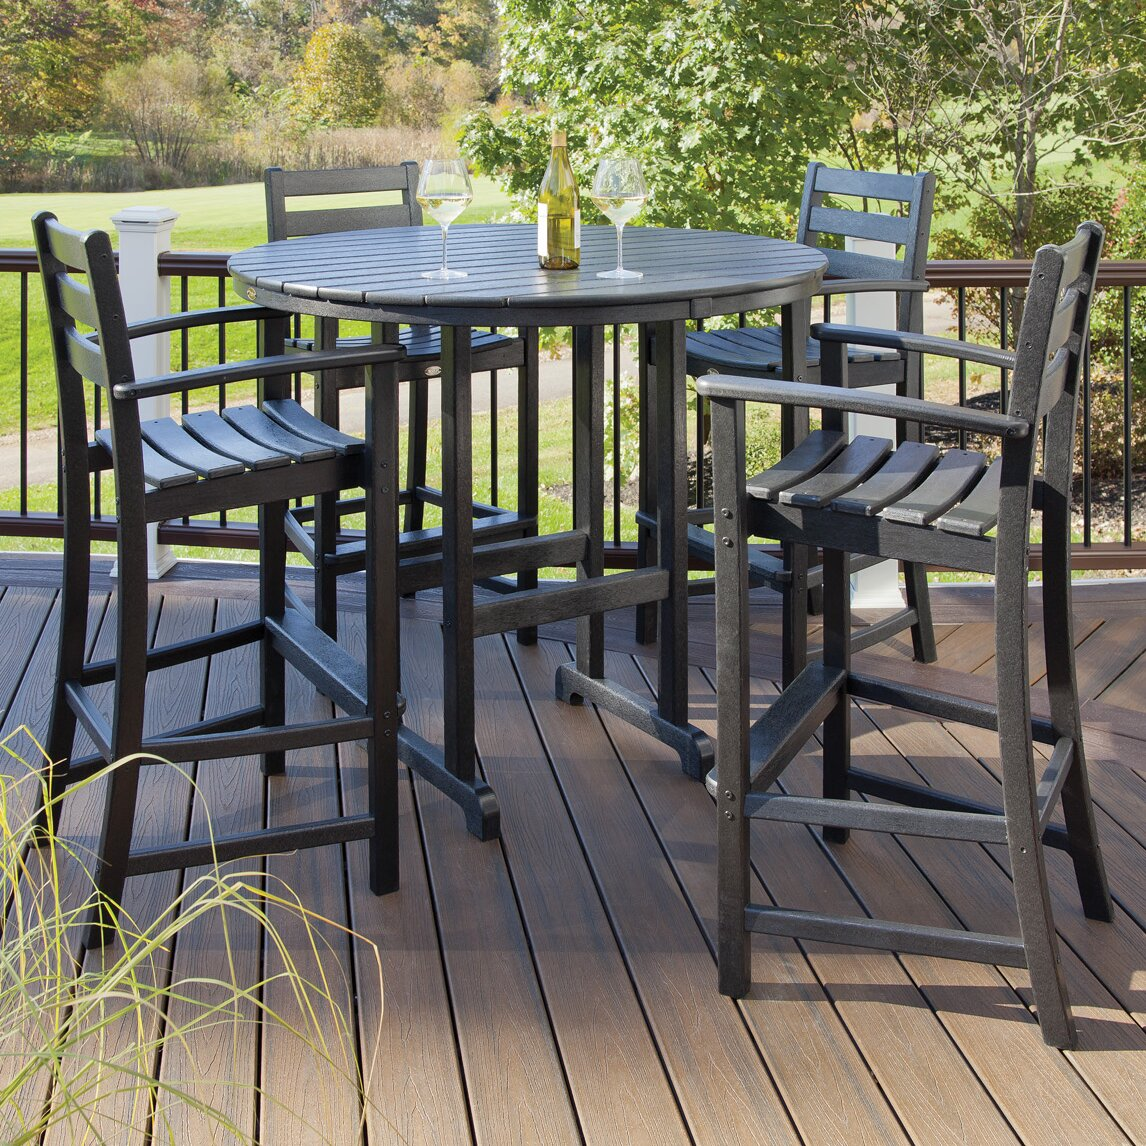 Bar Furniture Sets: Breakwater Bay Promfret Outdoor 5 Piece Bar Height Dining